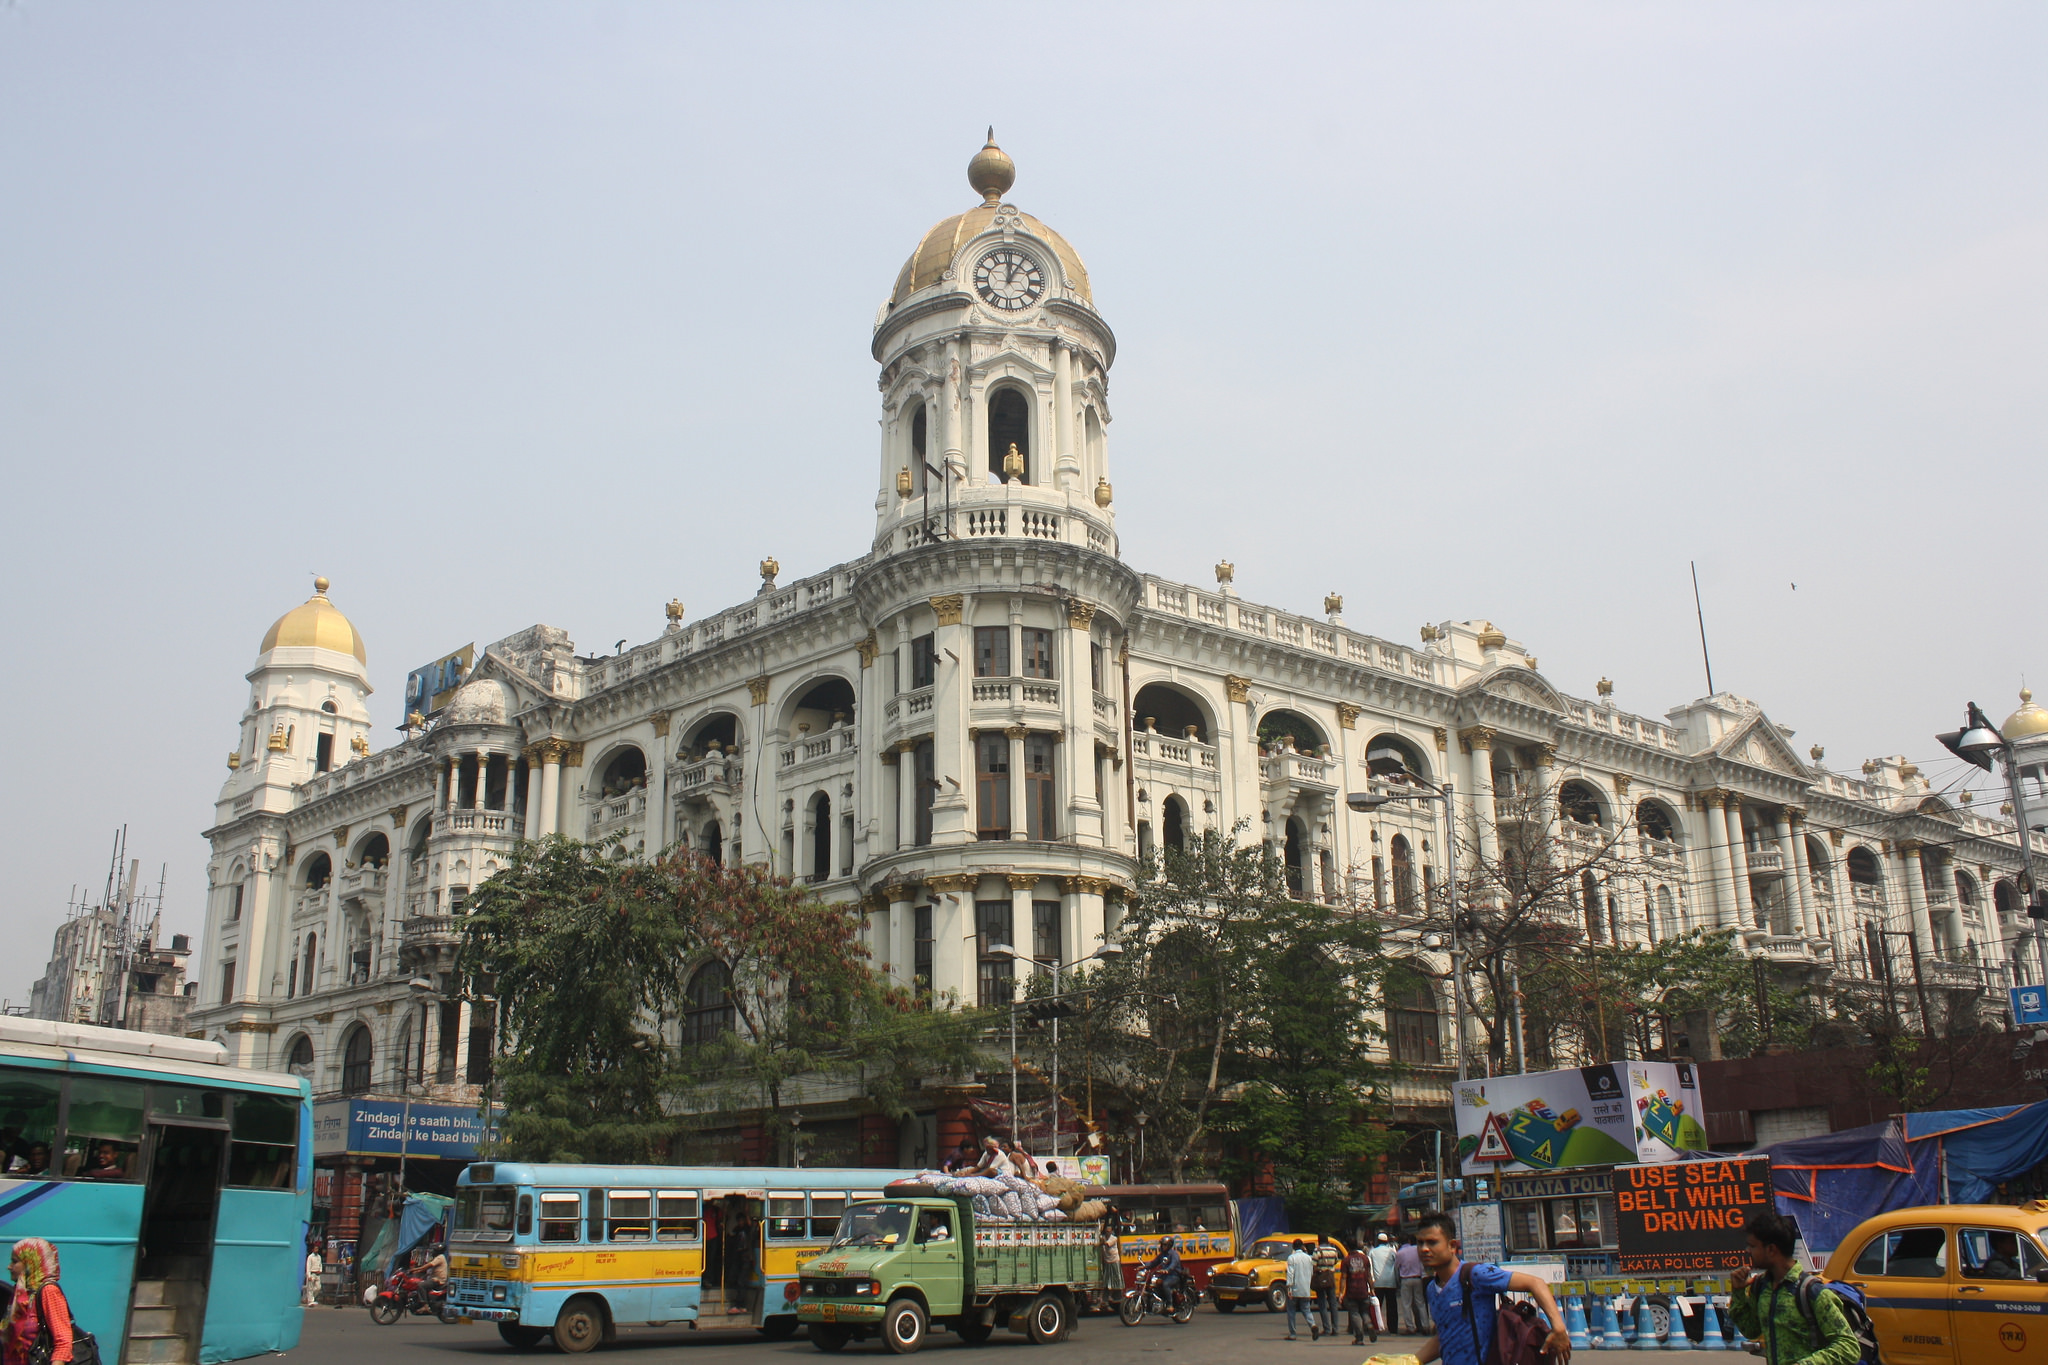 Russians tend to enjoy the contrasts in Indian cities like Kolkata.